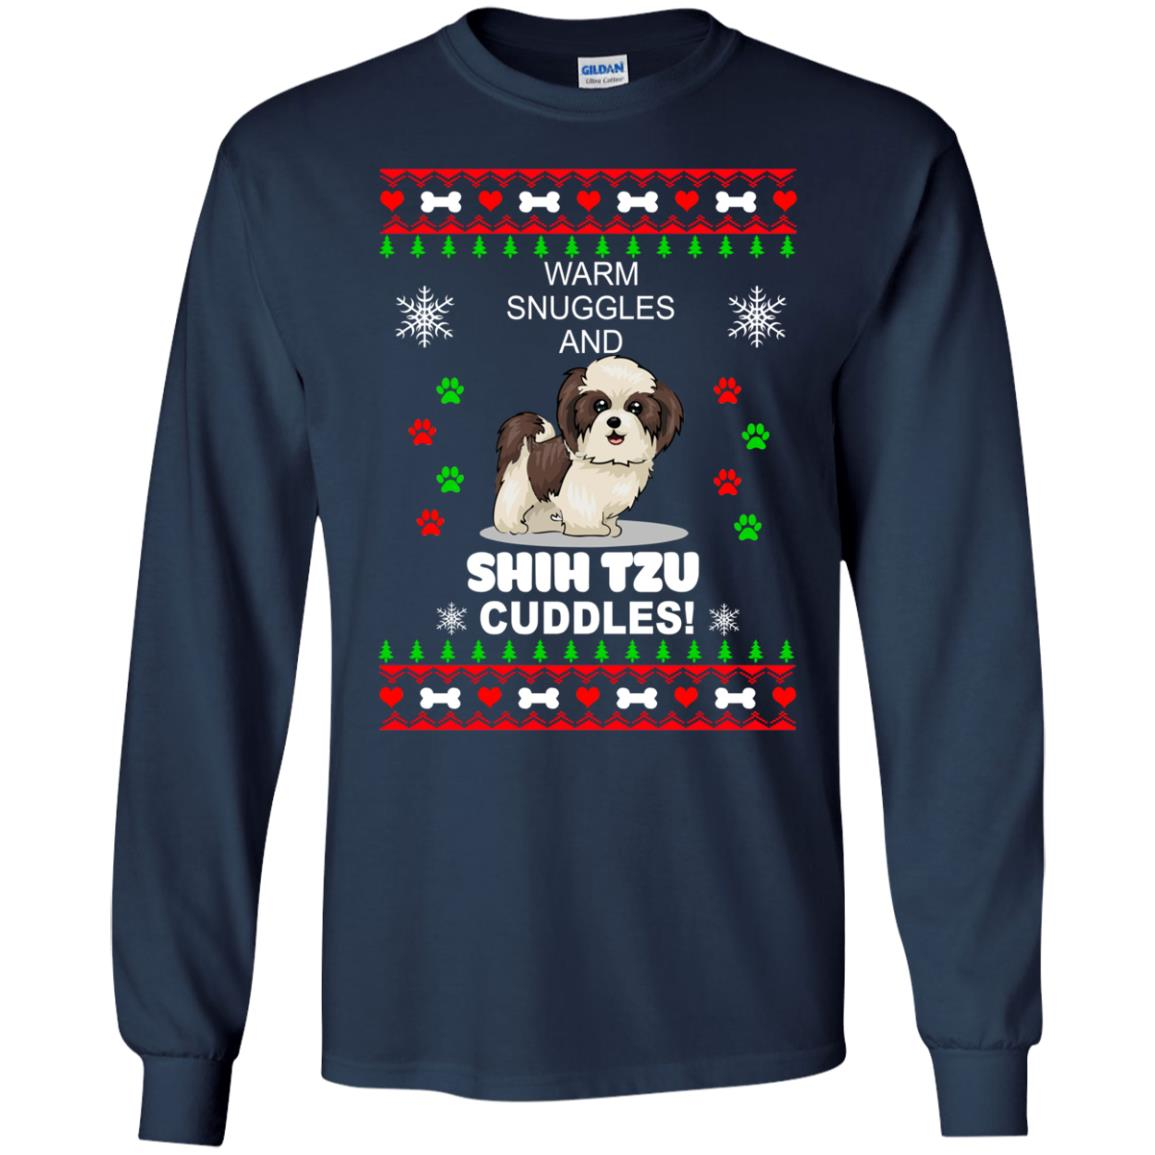 Warm snuggles and ShihTzu cuddles Christmas Sweater, Shirt - image 3983